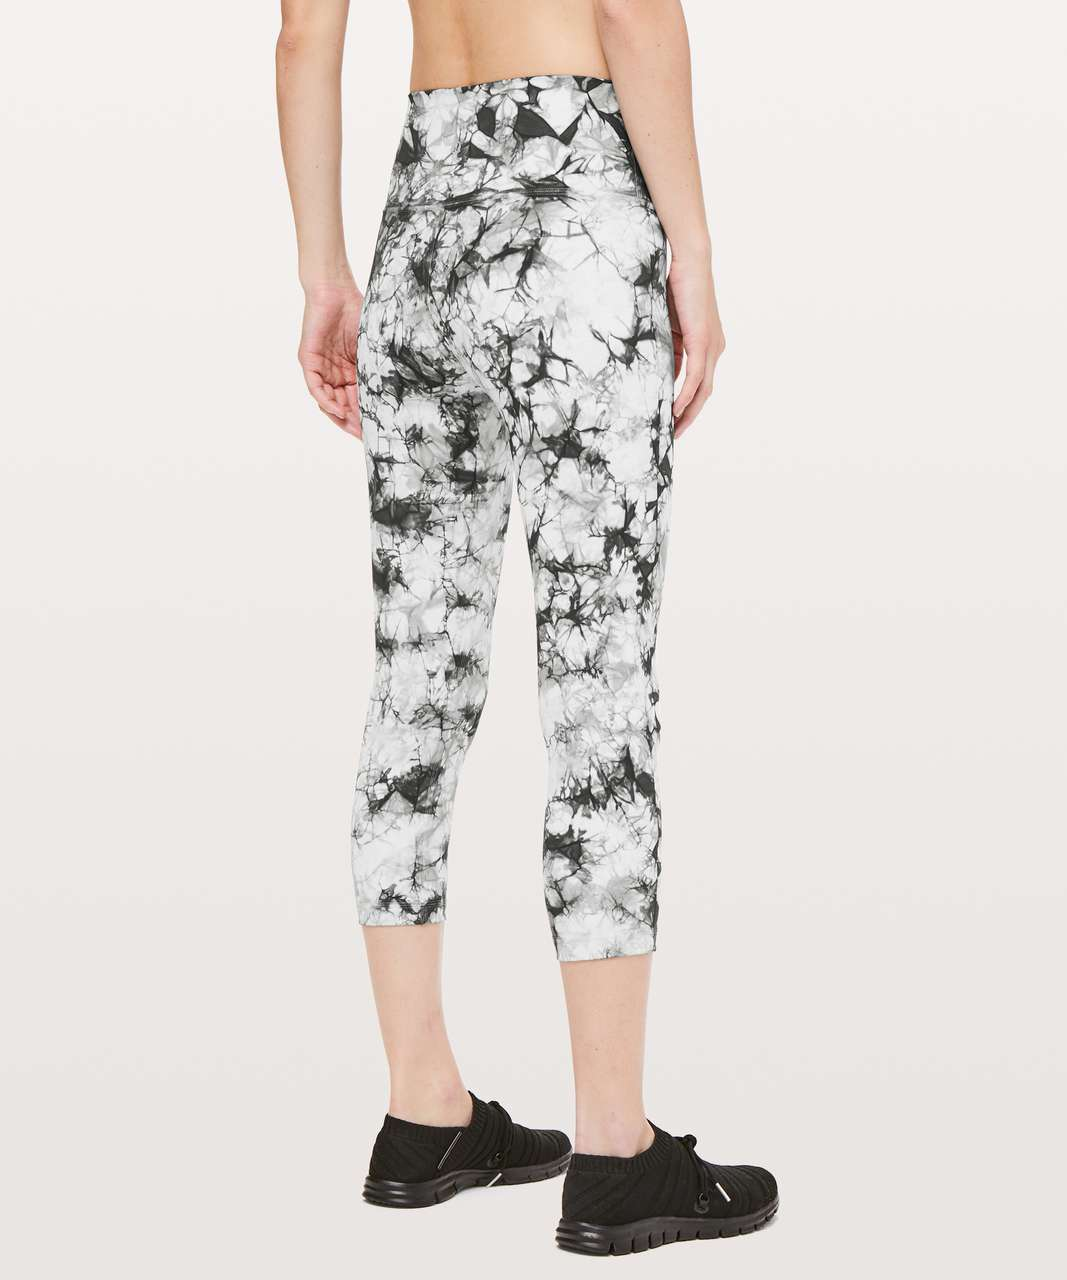 "Lululemon Wunder Under Crop Hi-Rise *Full-On Luxtreme Dual Shibori 21"" - Dual Shibori Antique White Cement Grey"